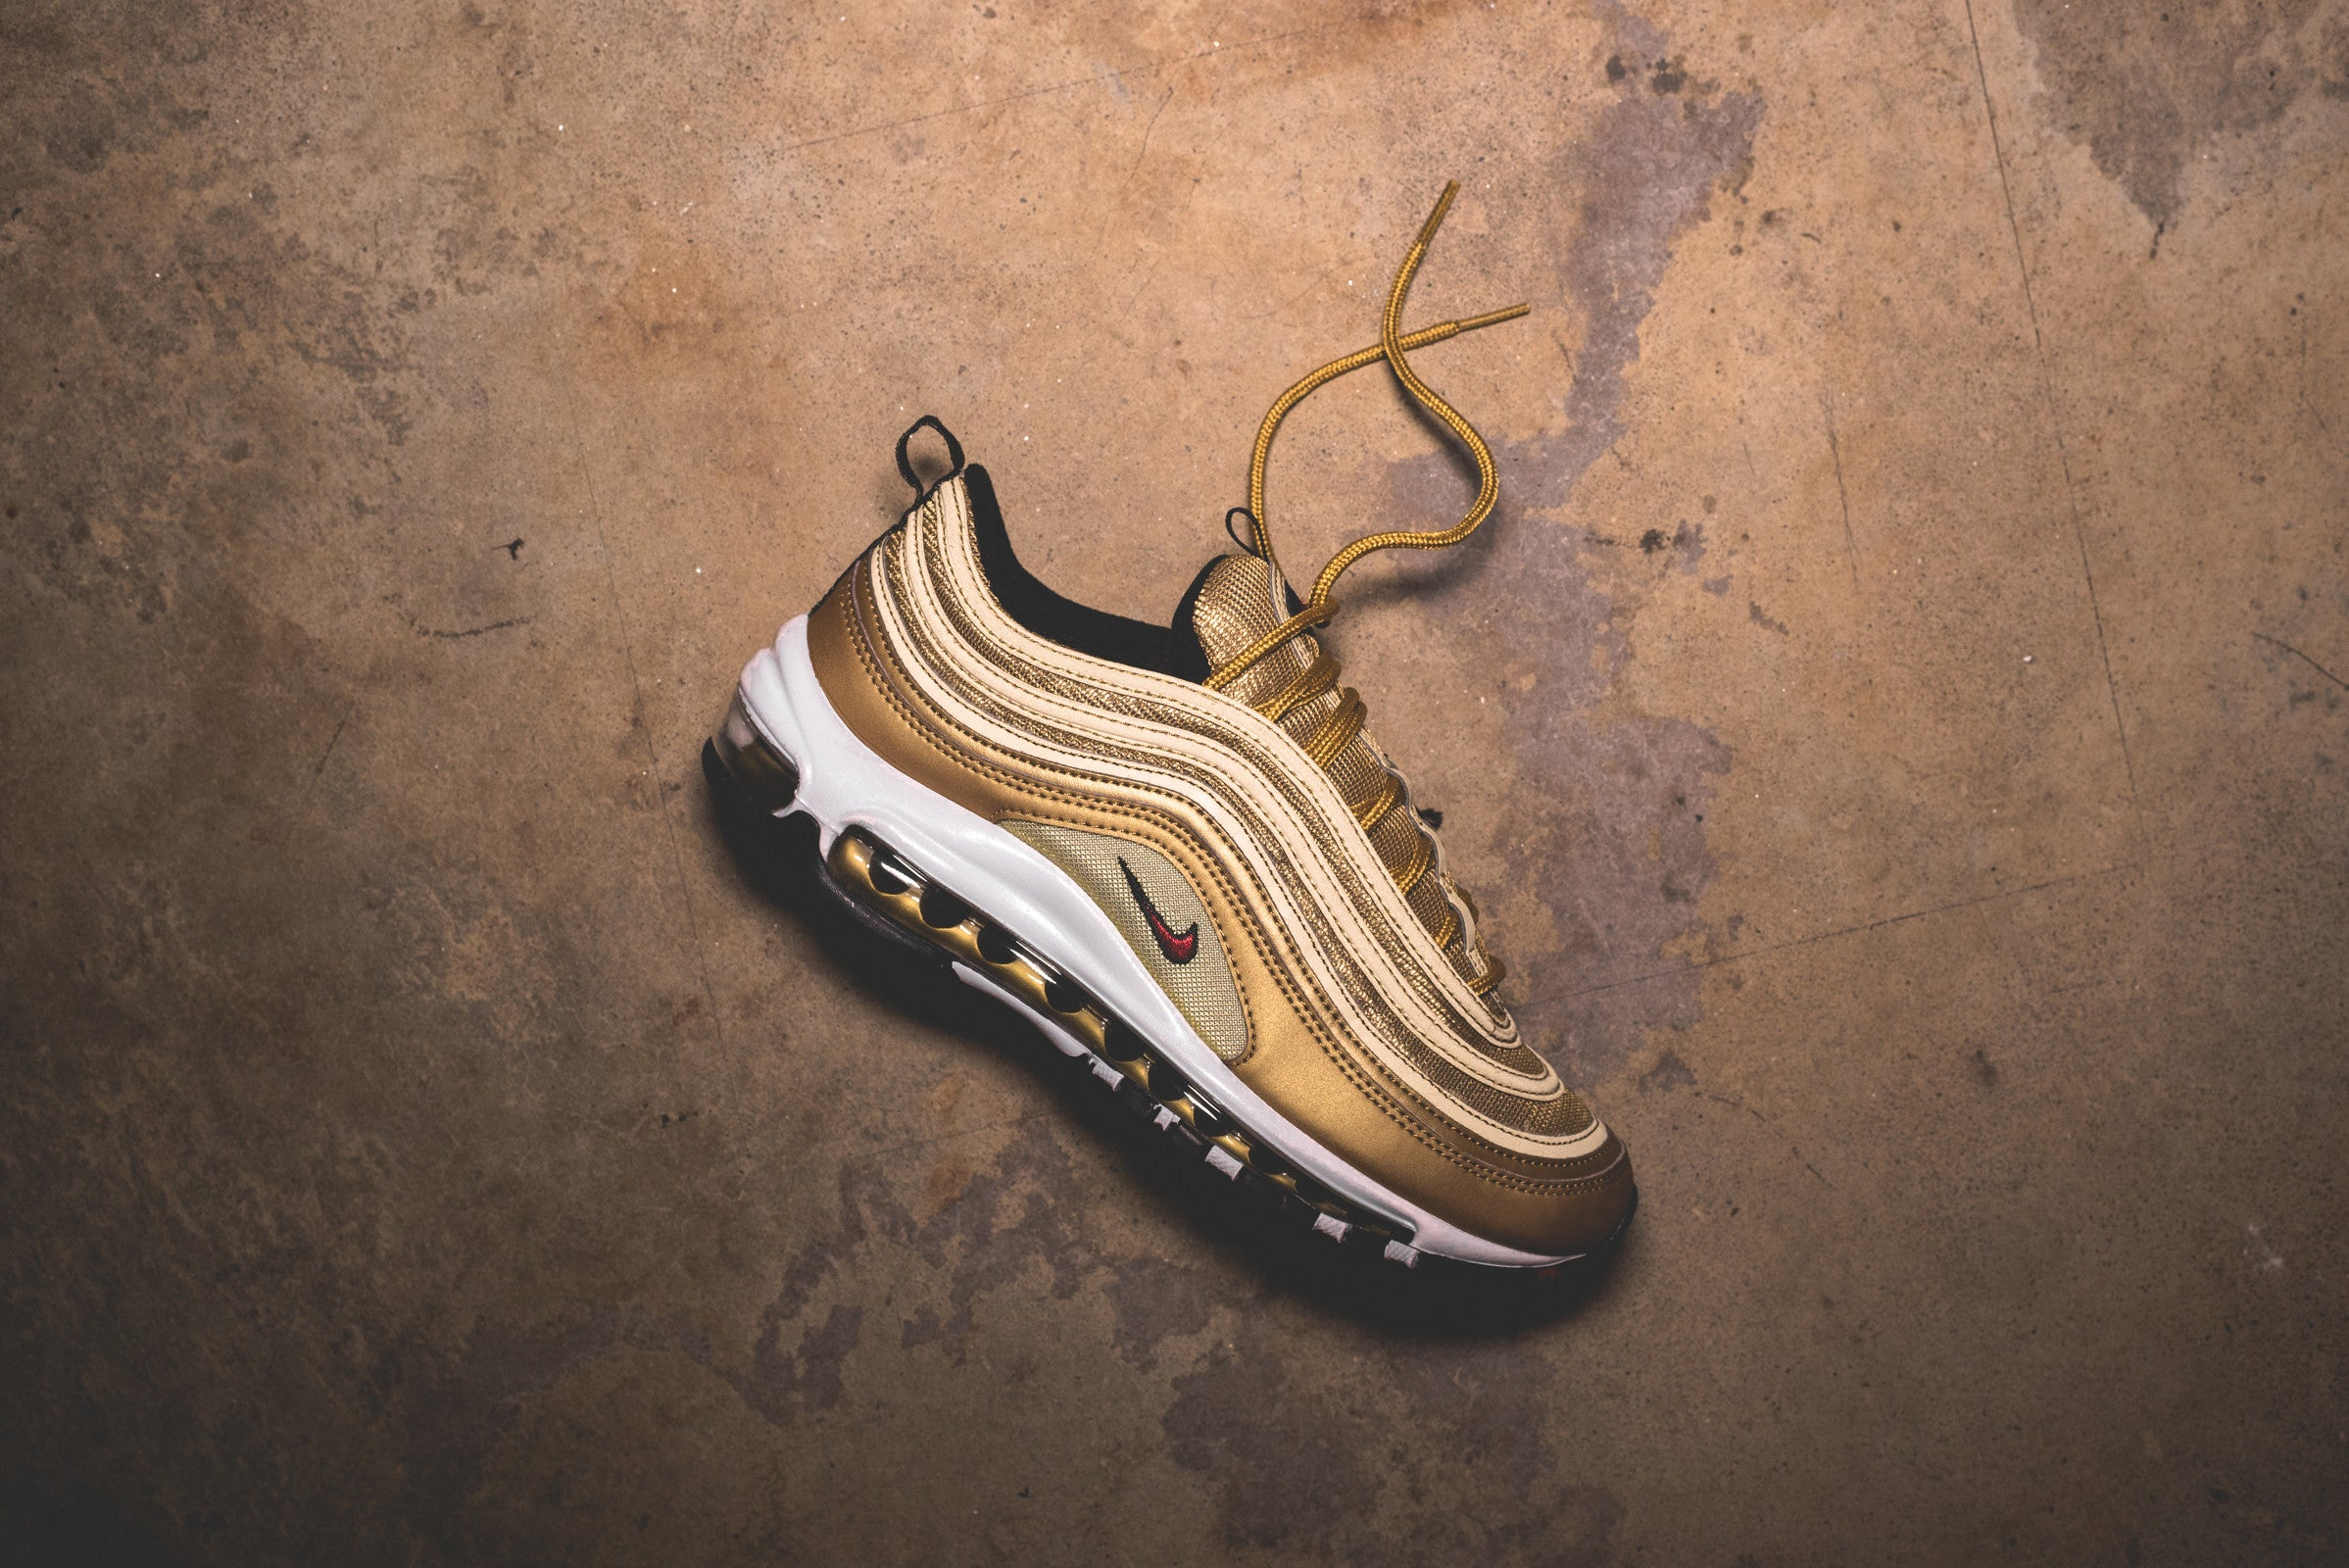 wholesale dealer b7d2c a04cf Nike WMNS Air Max 97 OG QS - Metallic Gold / Varsity Red ...